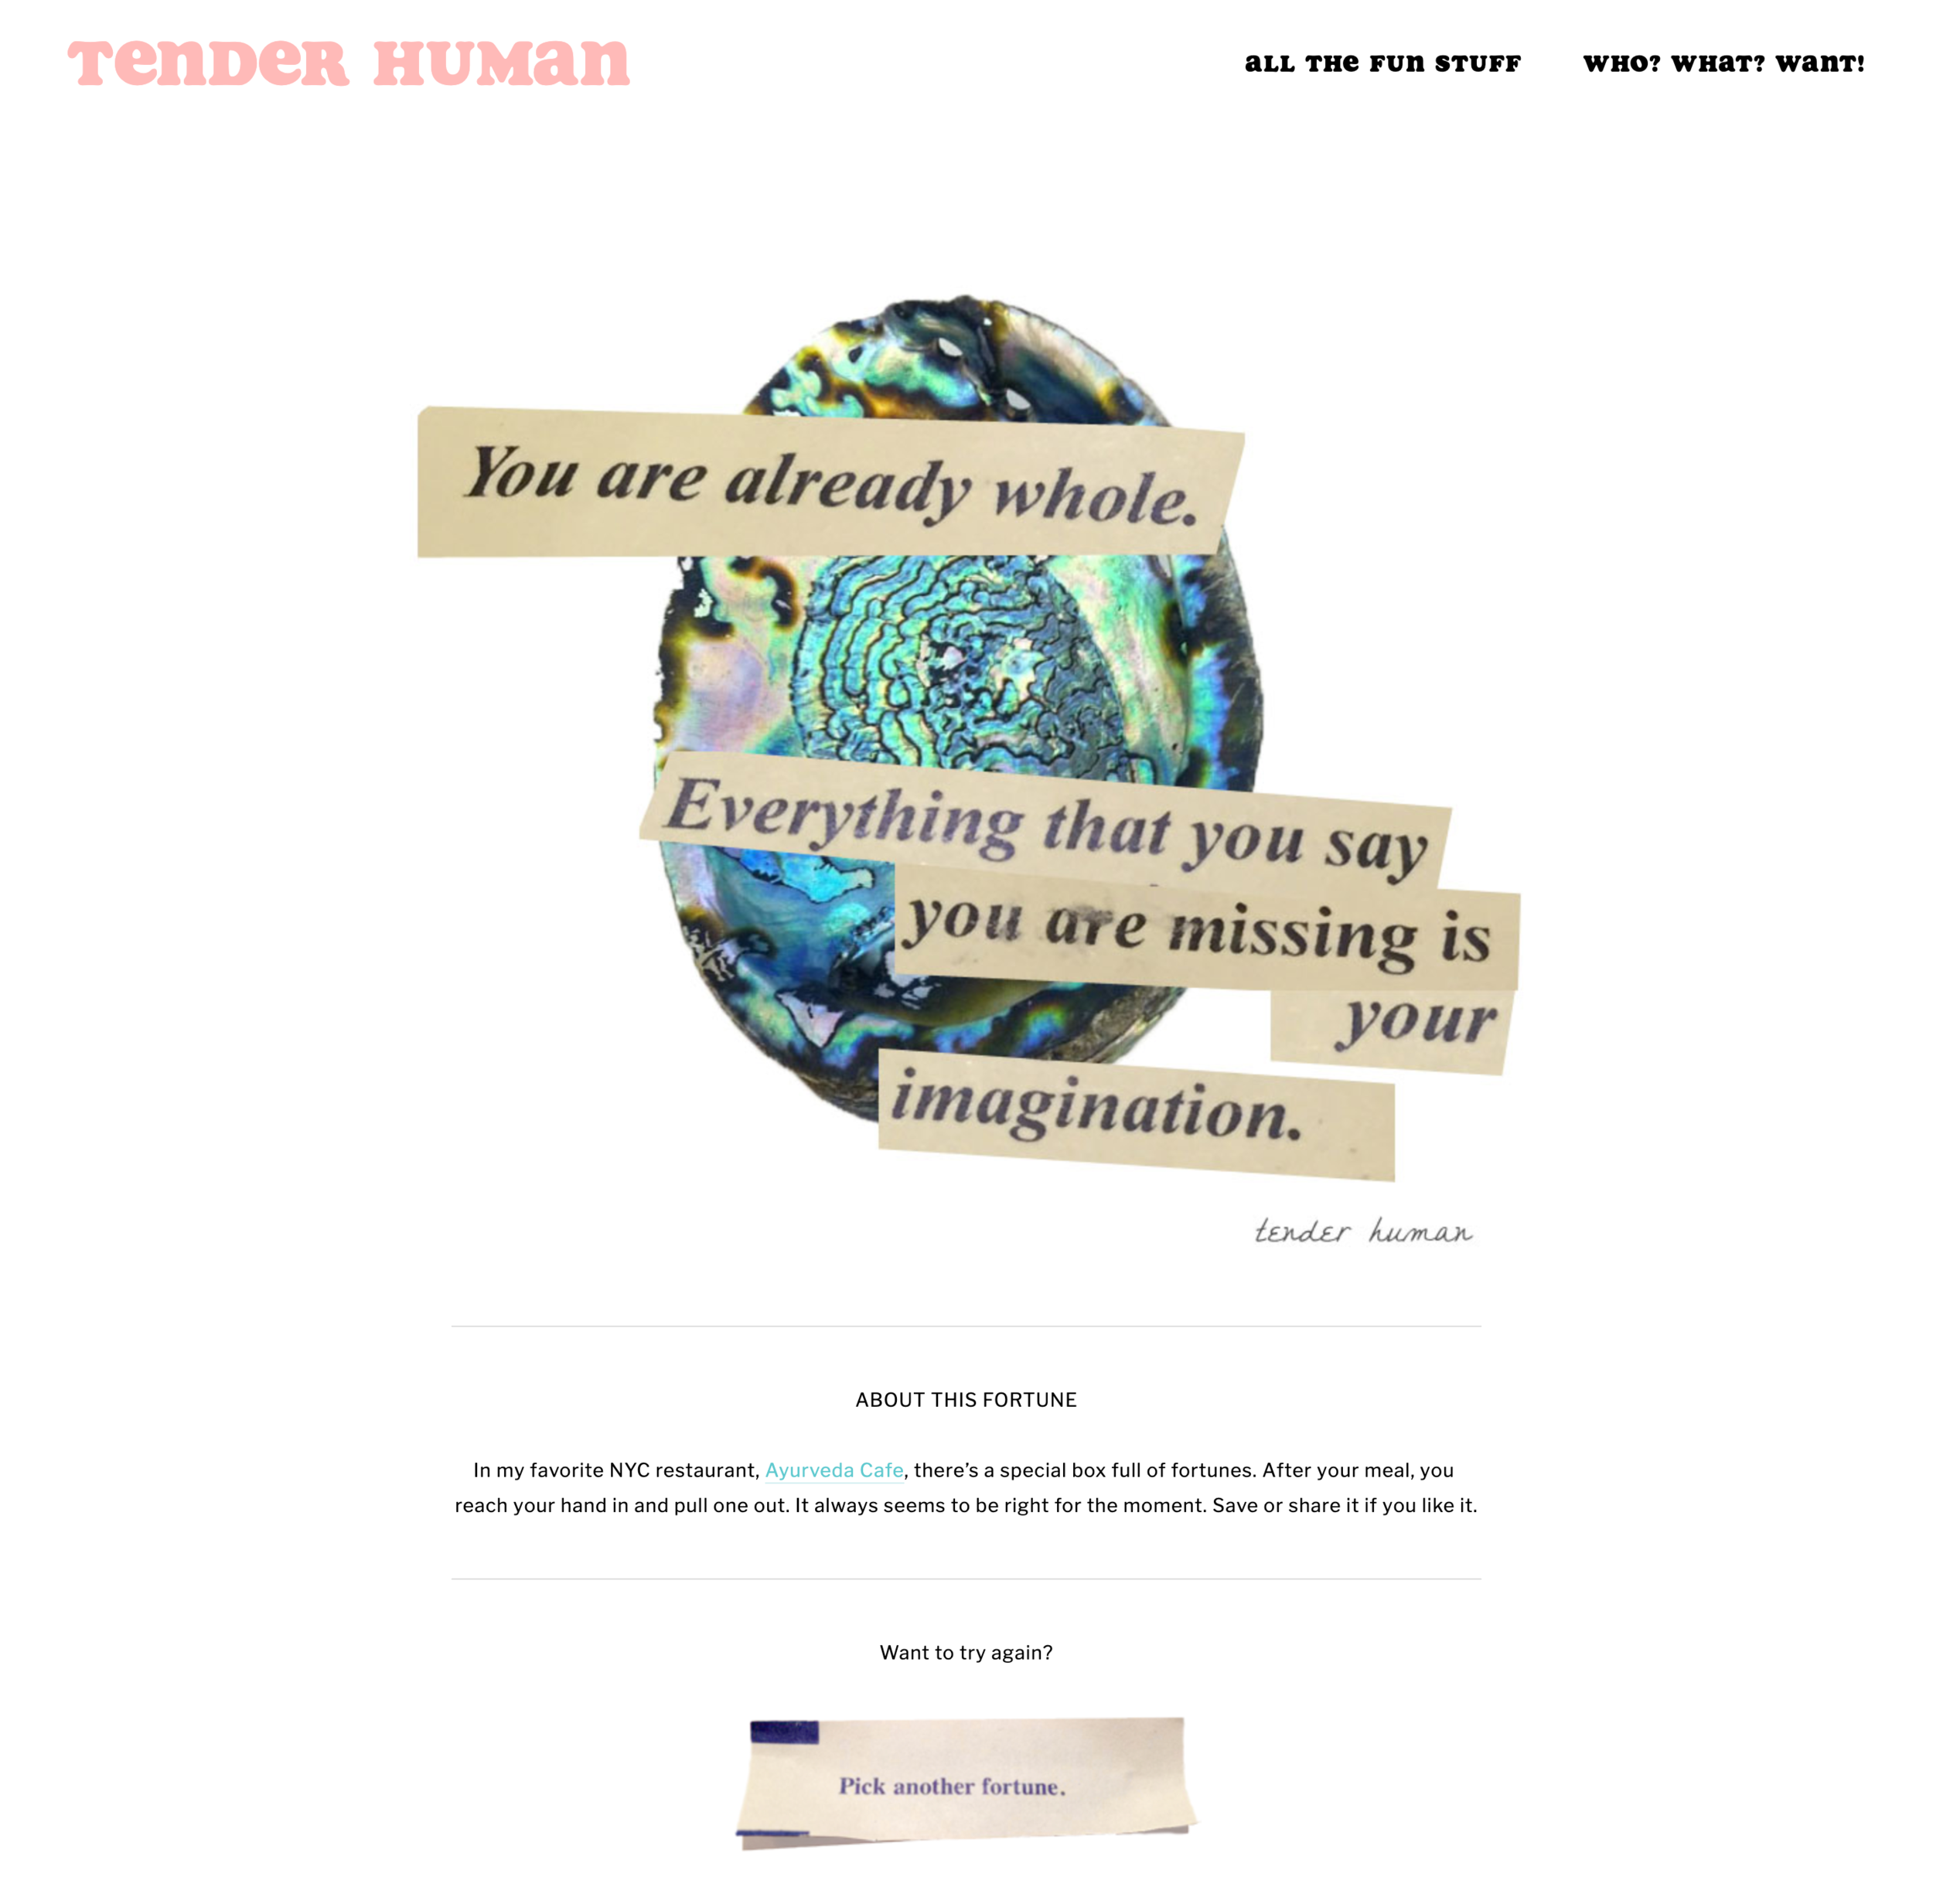 screencapture-tenderhuman-fortune-05323-2019-04-10-16_22_45.png